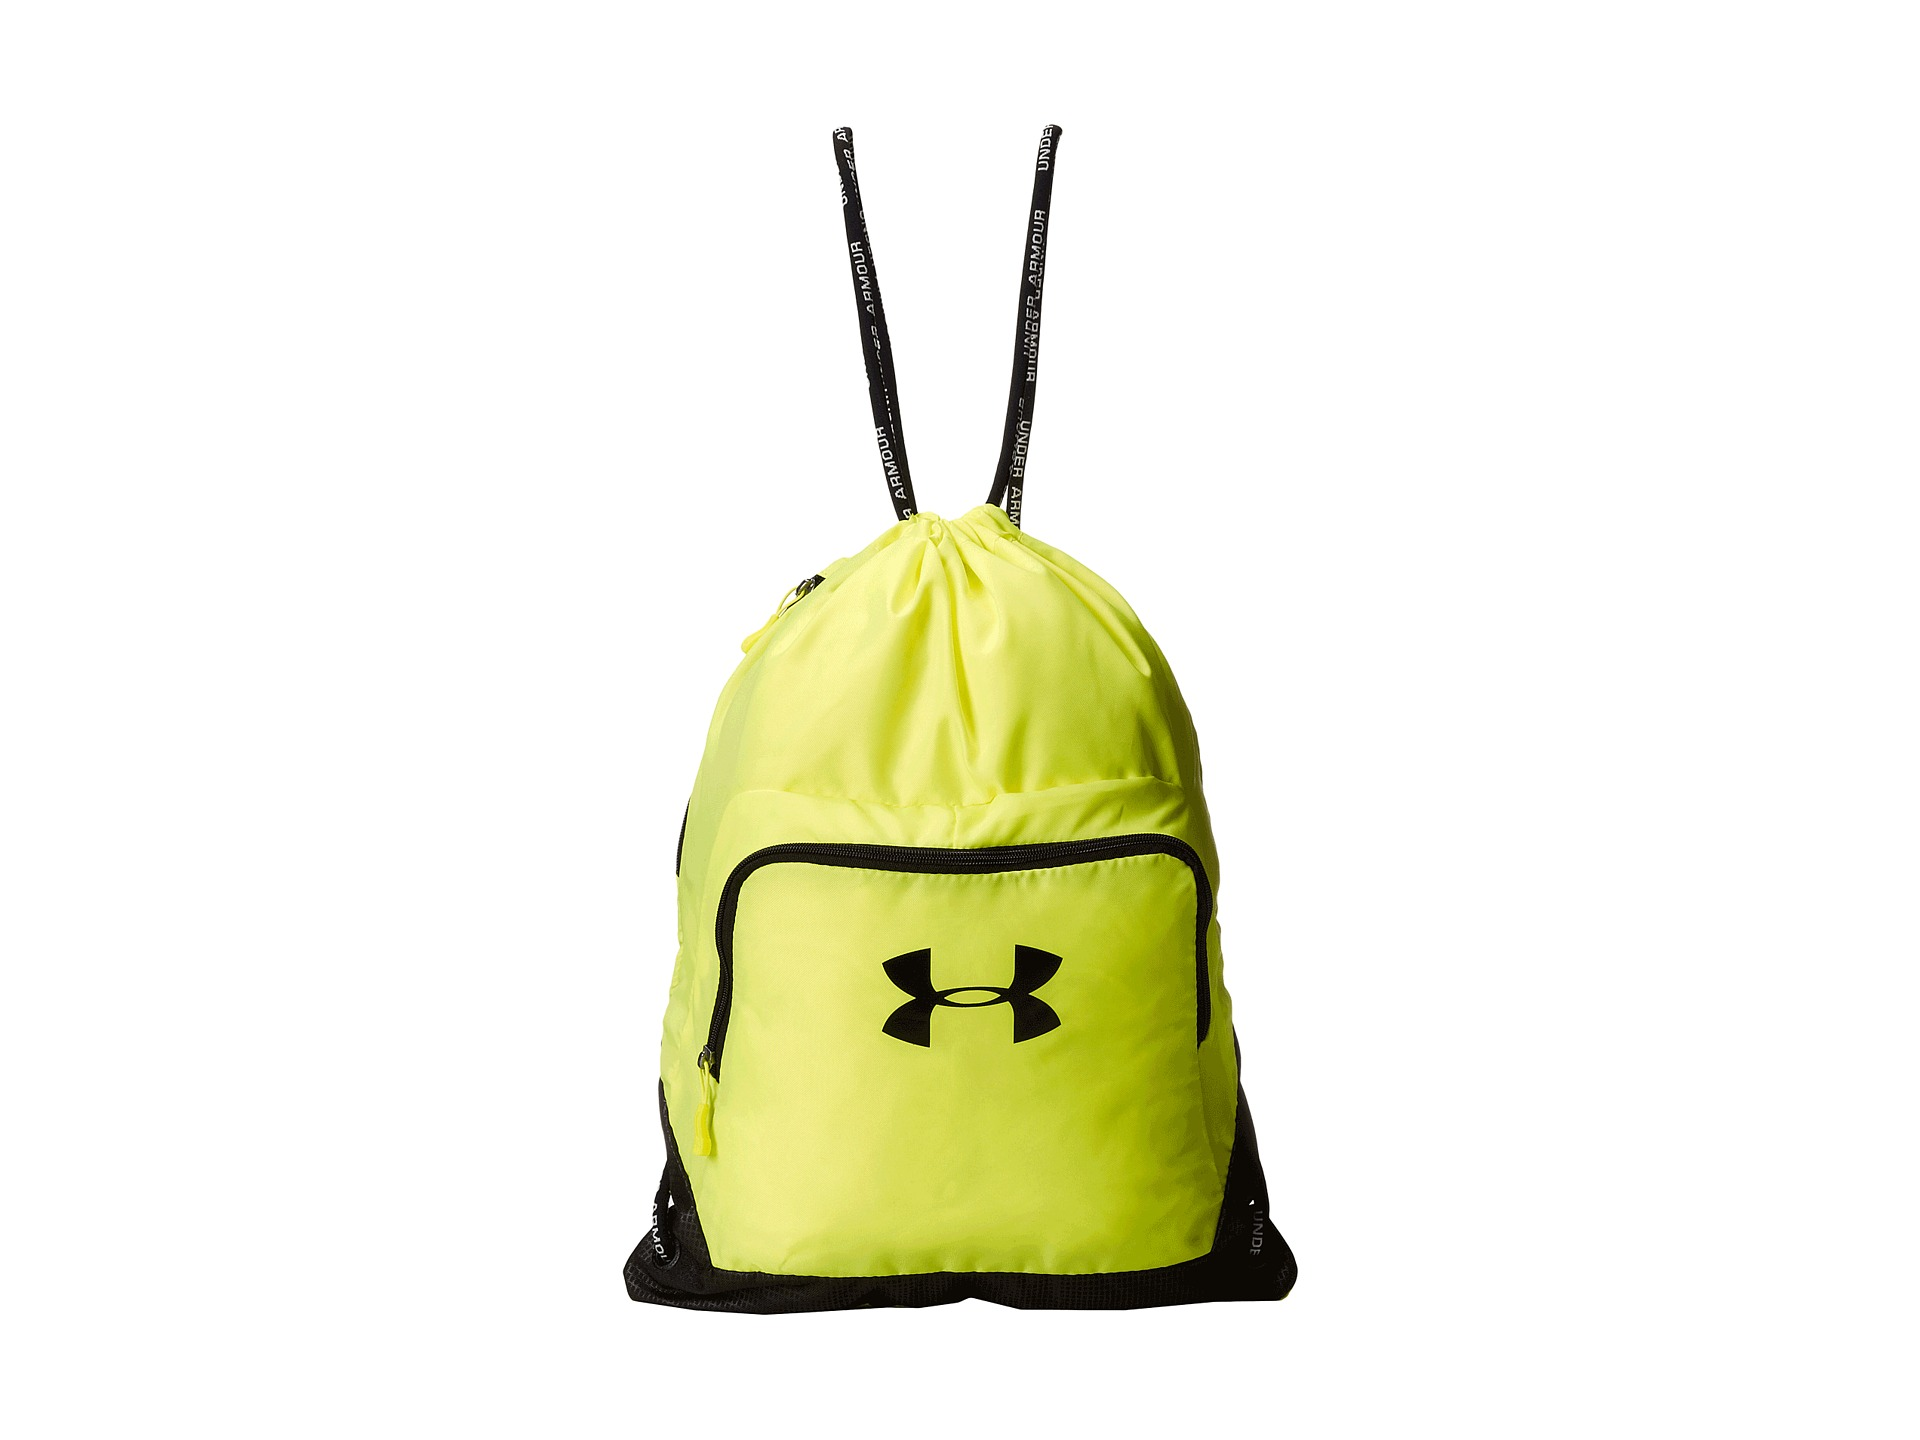 3a438424629f ua sling backpack cheap   OFF46% The Largest Catalog Discounts